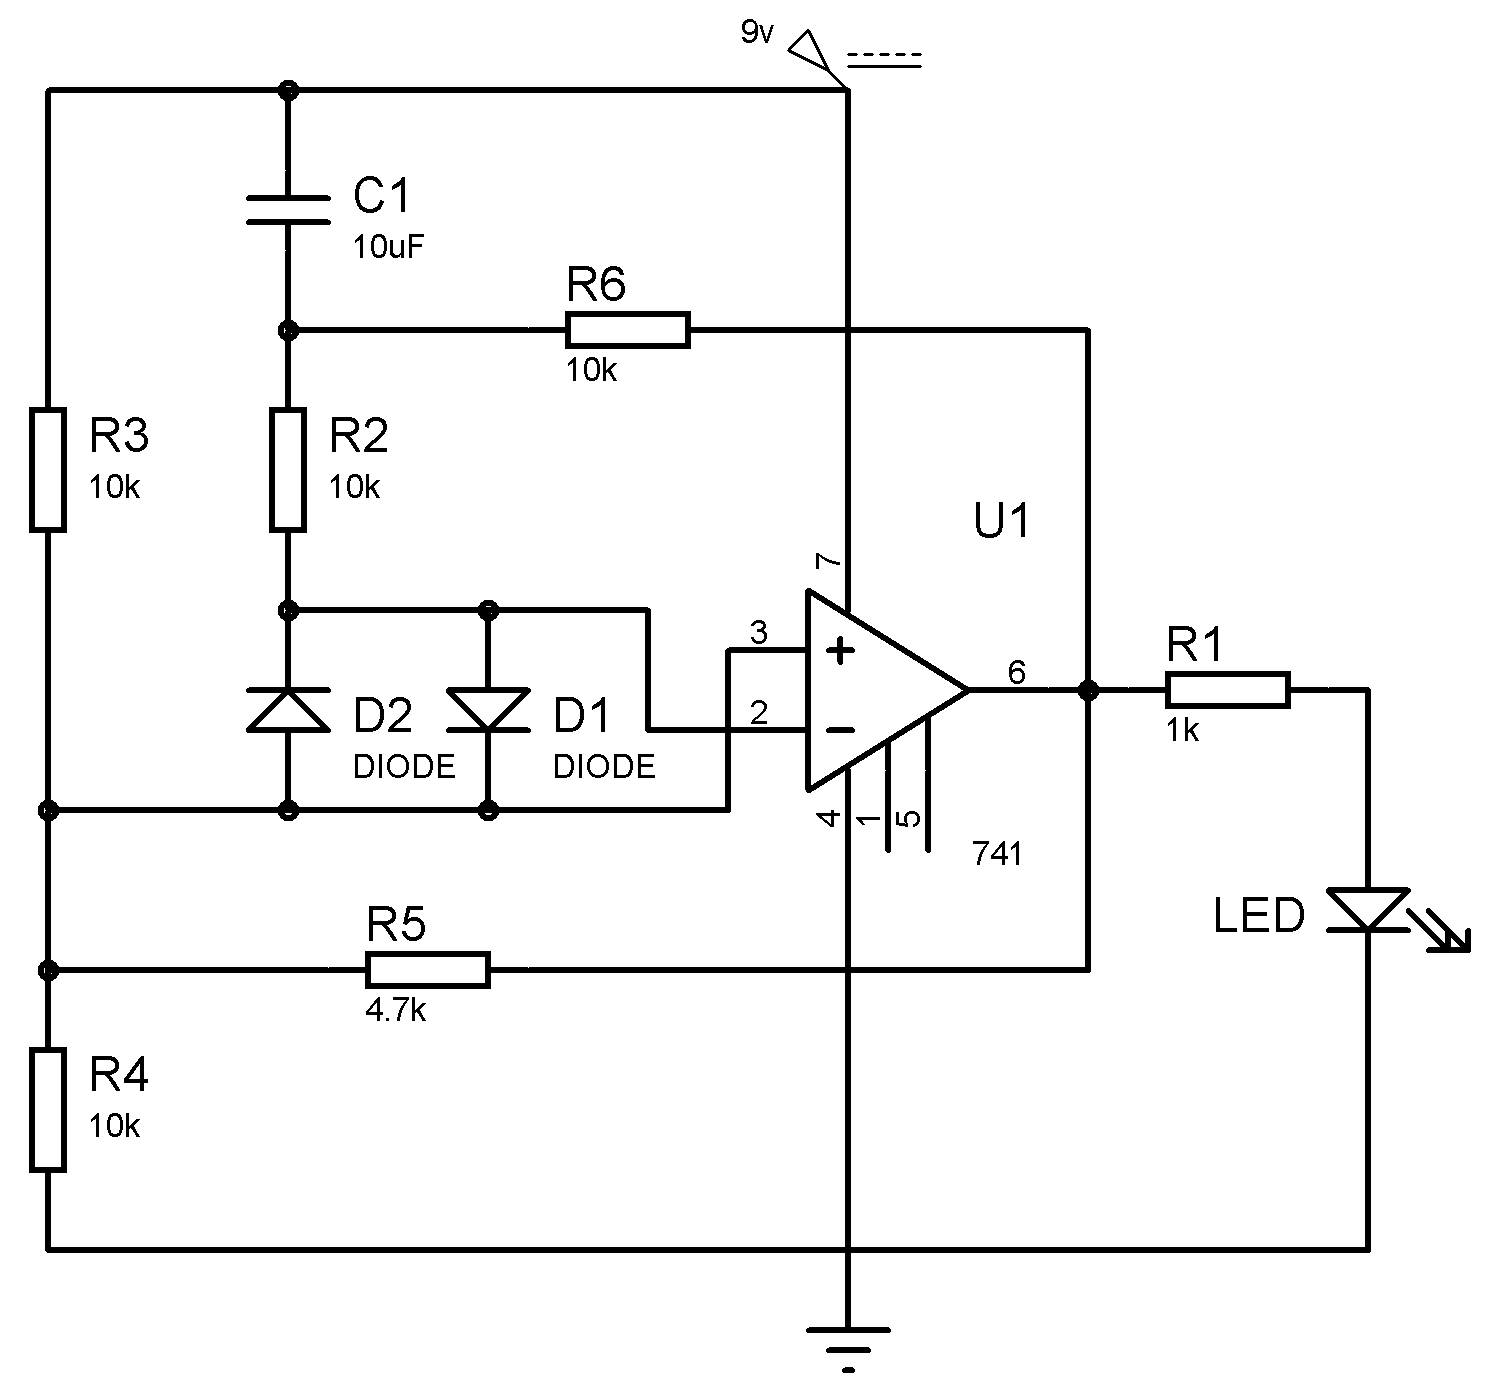 Op Amp Ic Lm741 Tester Circuit Diagram Test Capacitor In Opamp